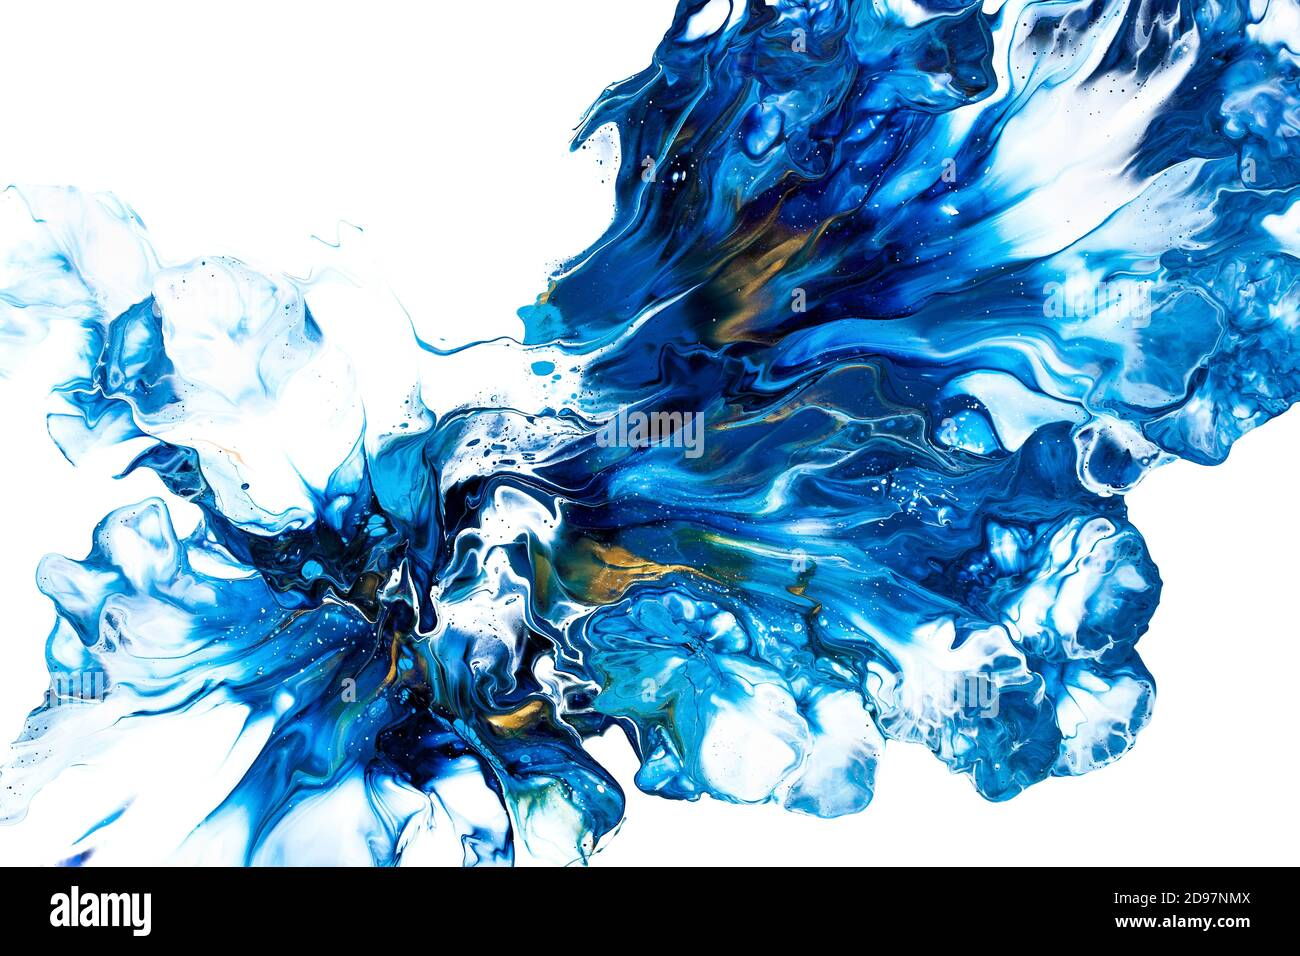 Acrylic Paint Pouring Fluid Art Abstract Flower Isolated On The White Background Floral Theme Stock Photo Alamy